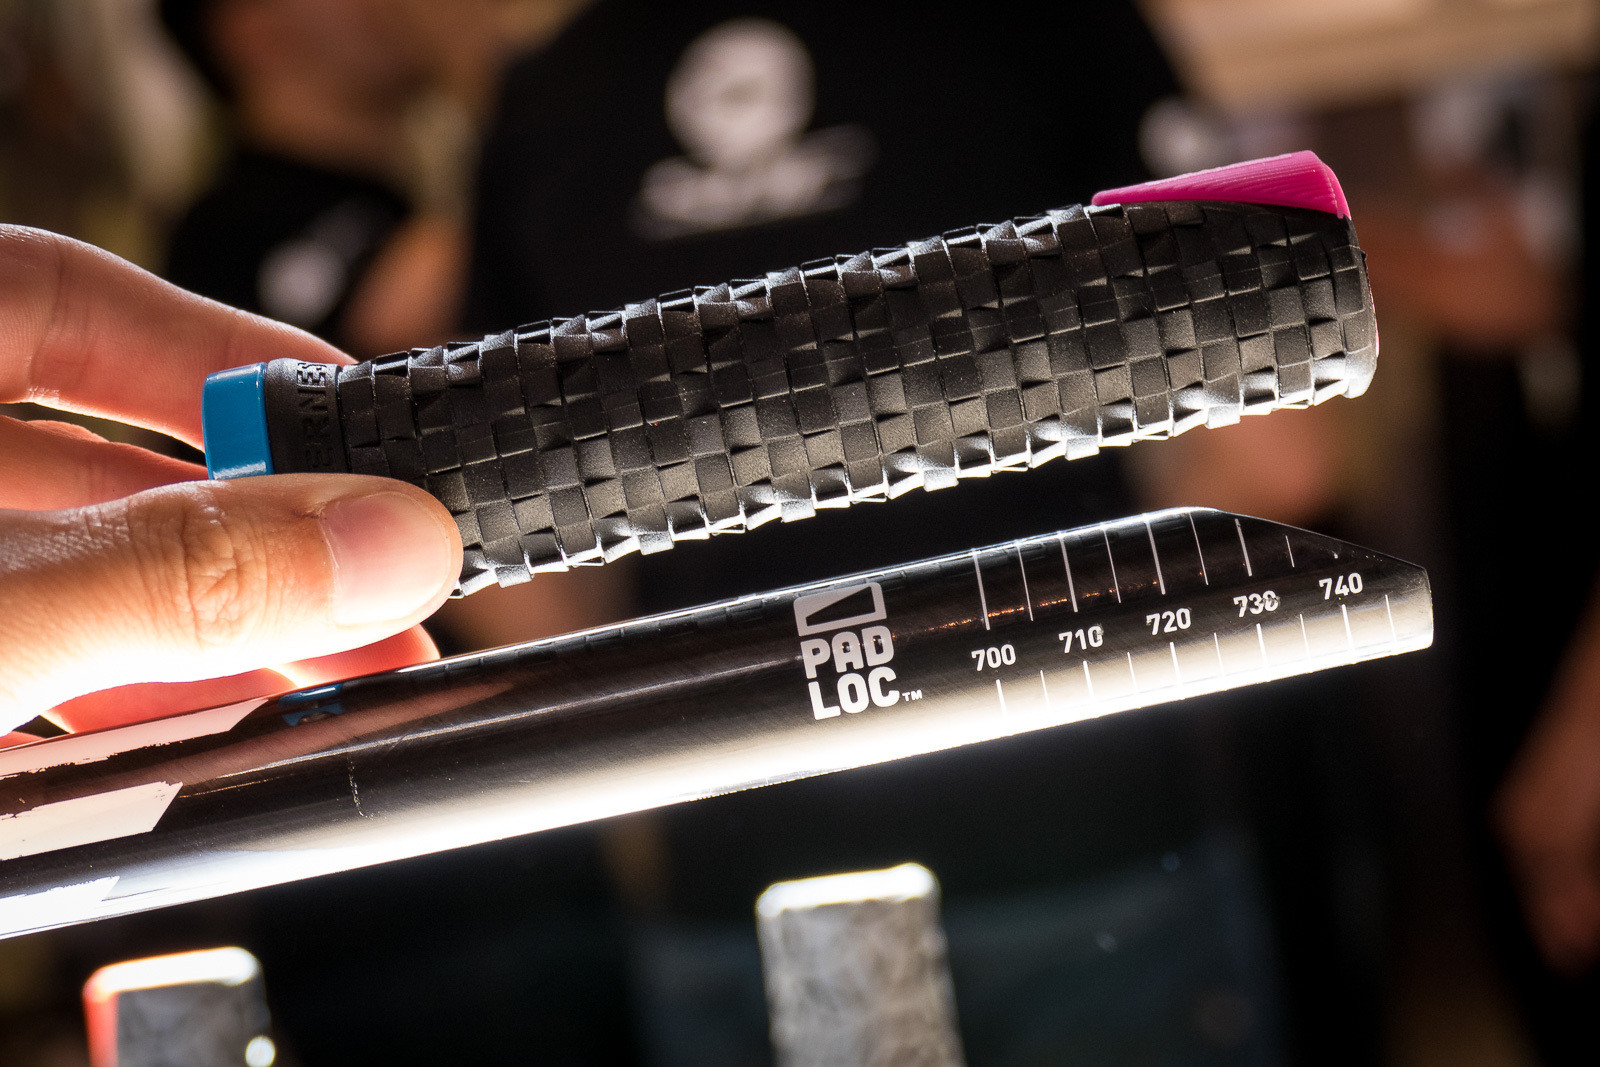 WTB Pad Loc Grip and Bar System - 2016 Mountain Bike Components at Eurobike - Mountain Biking Pictures - Vital MTB